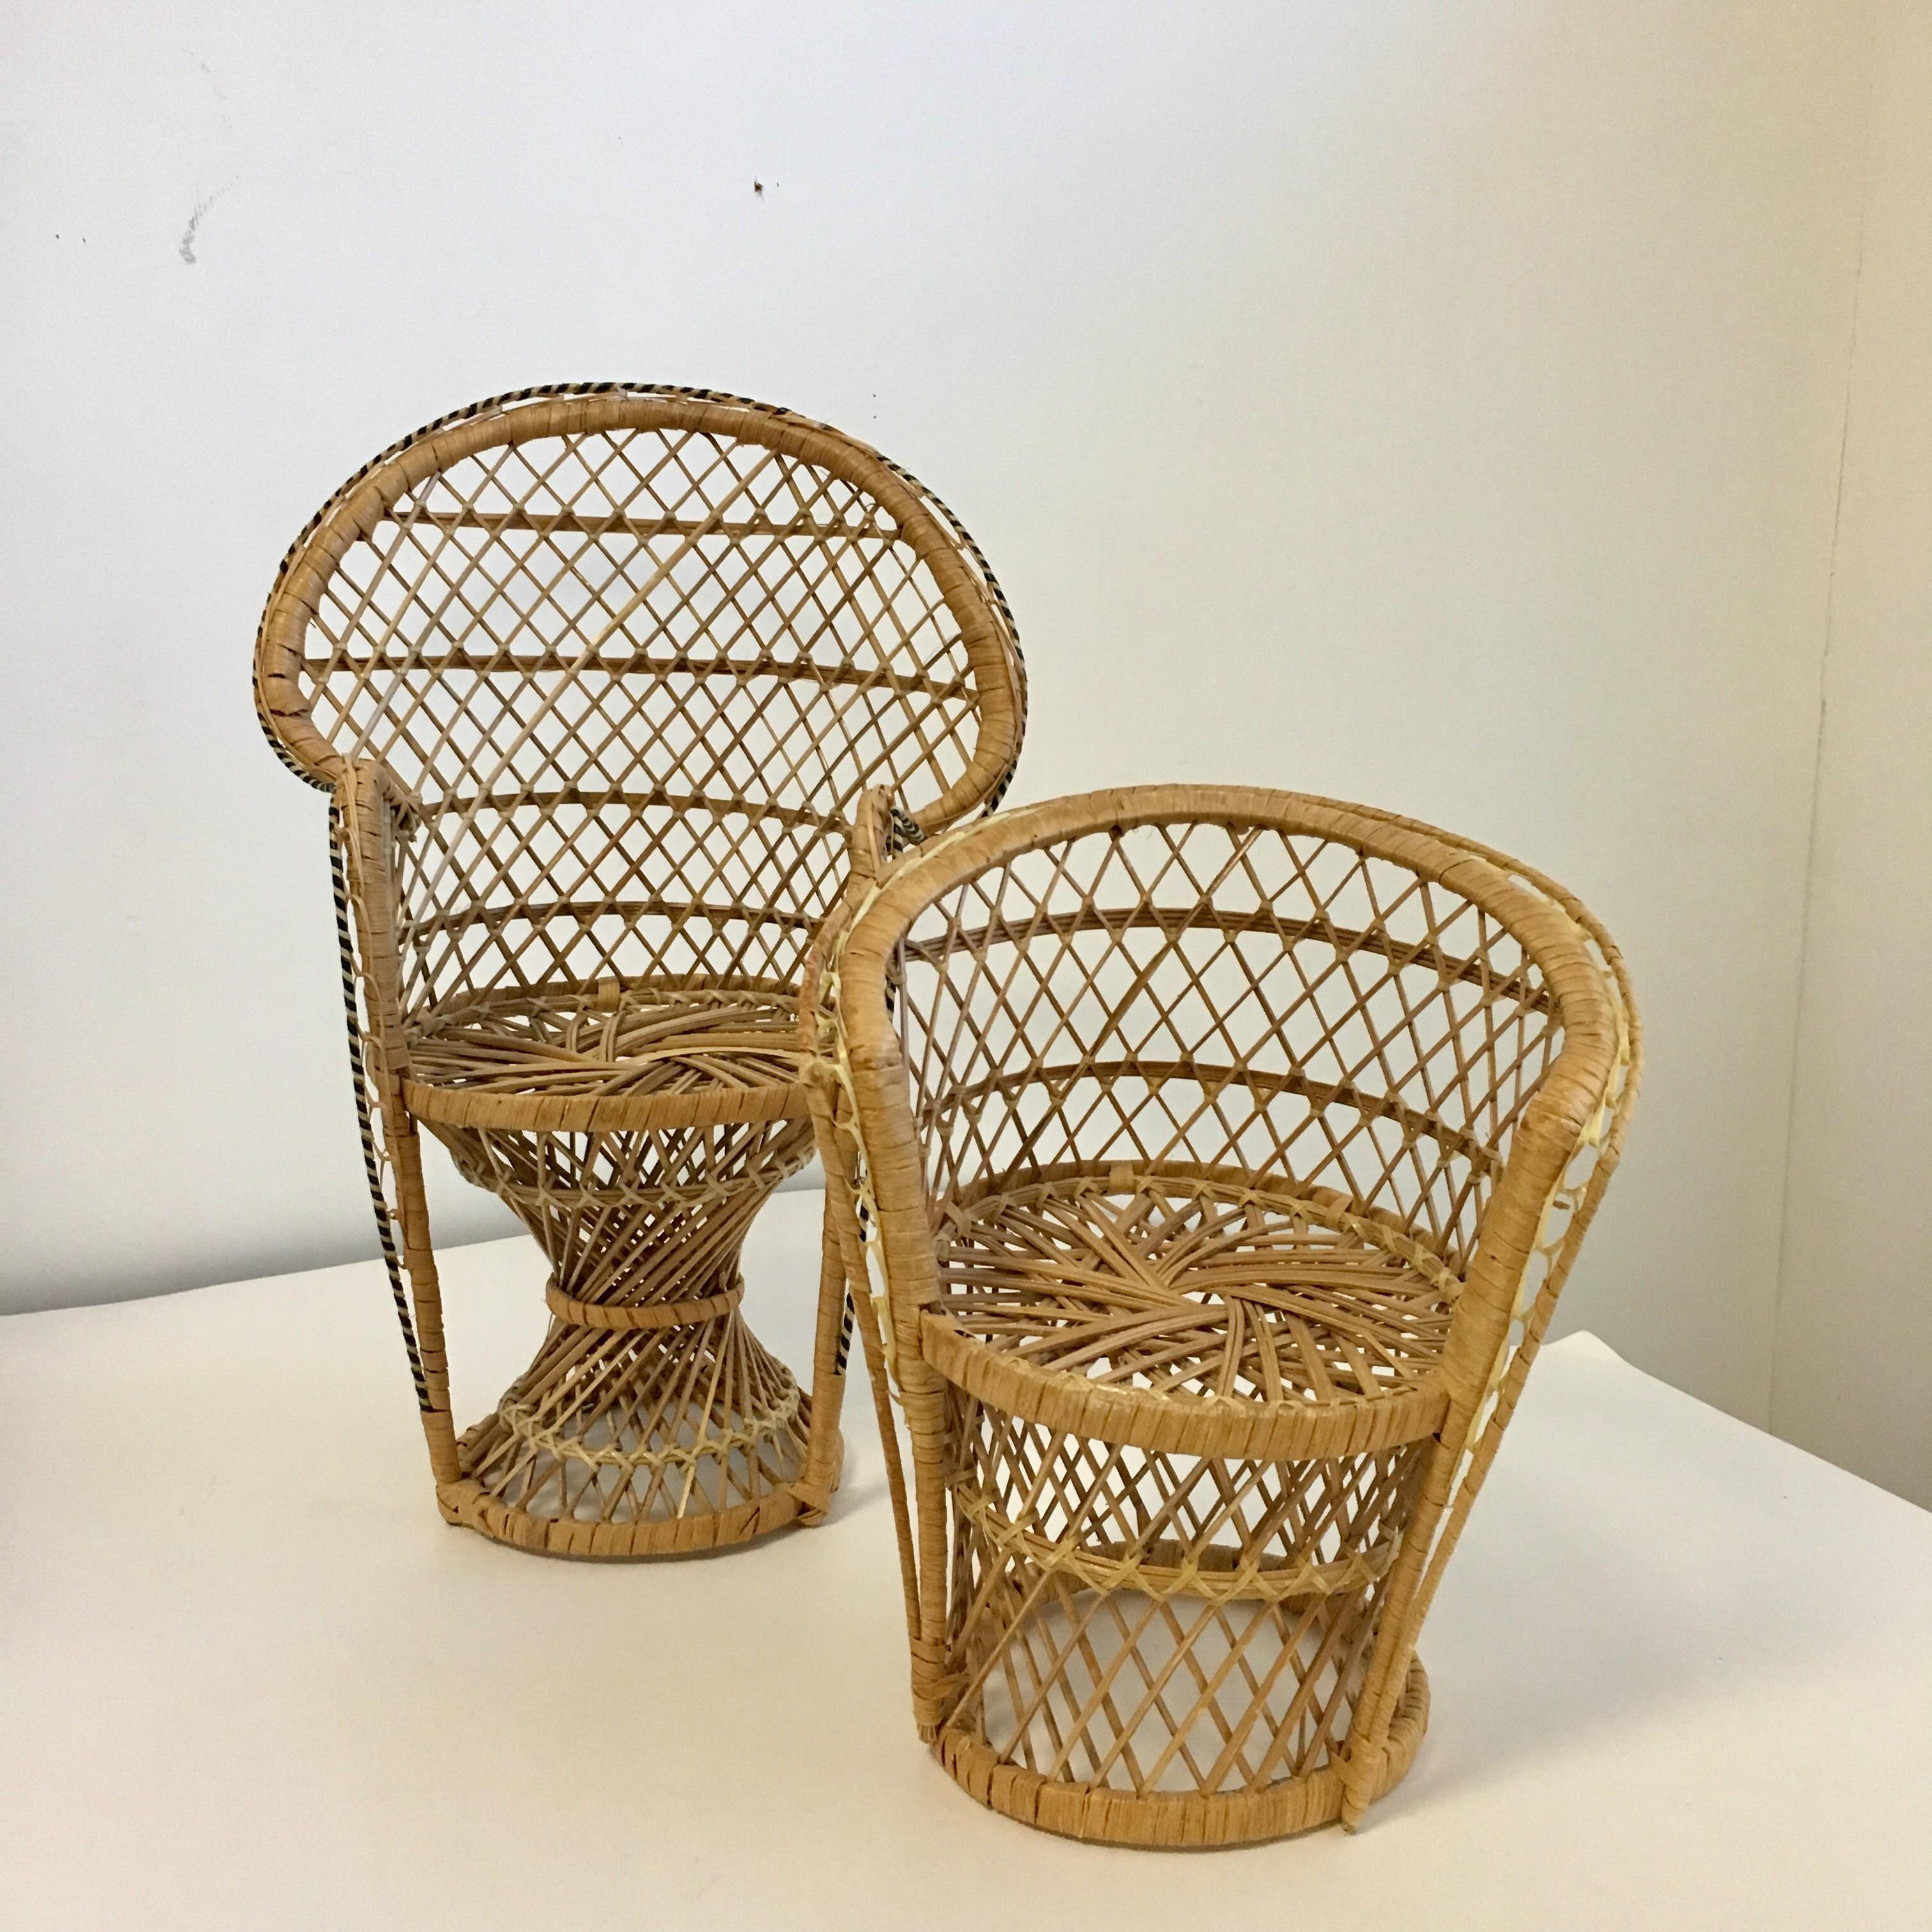 A Darling Pair Of Petite Vintage Wicker Chairs That Can Be Used As Plant  Stands.